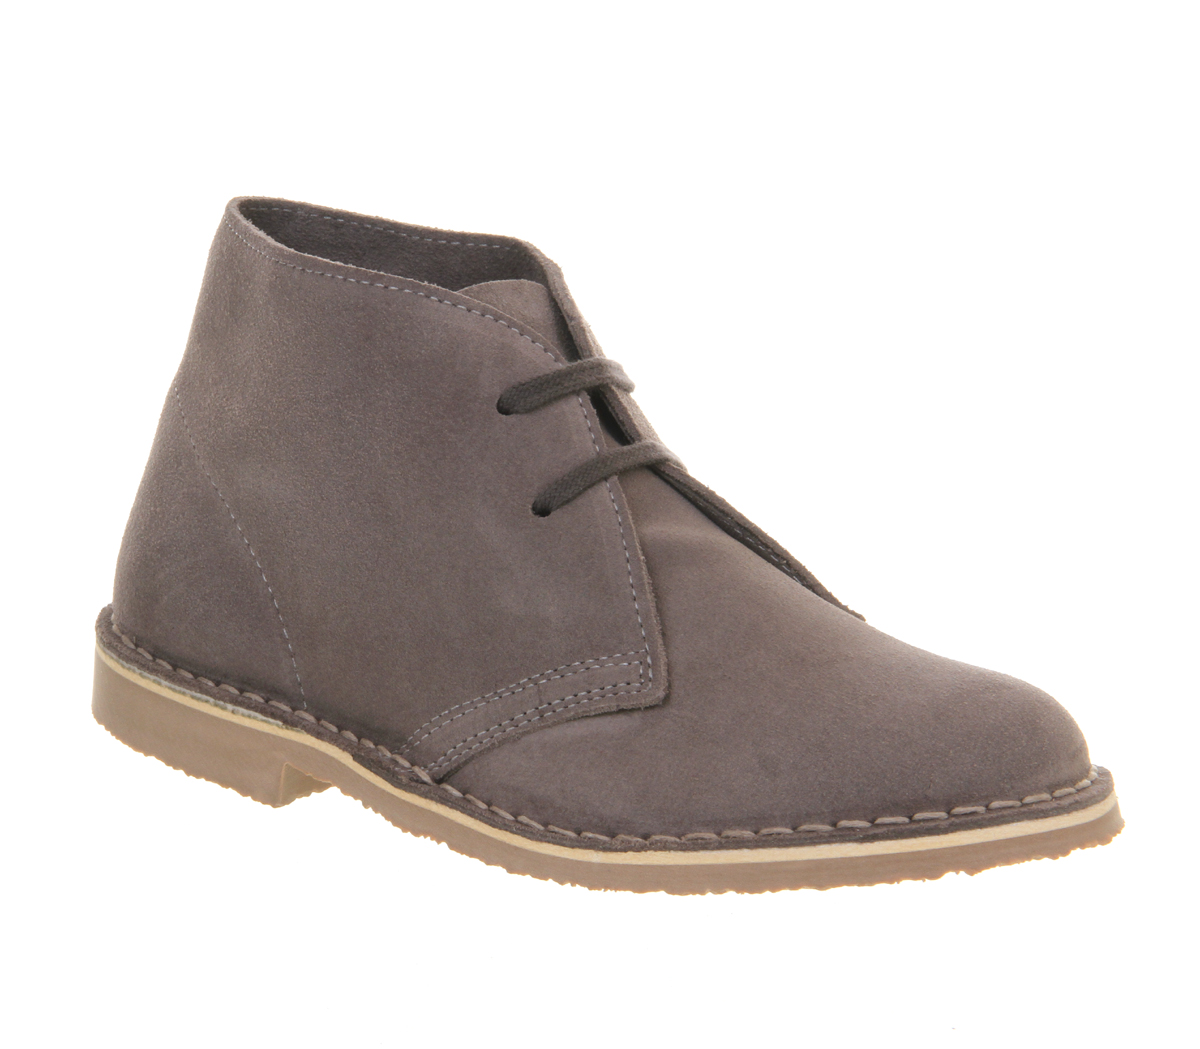 womens office uphill desert boot grey suede boots size 7